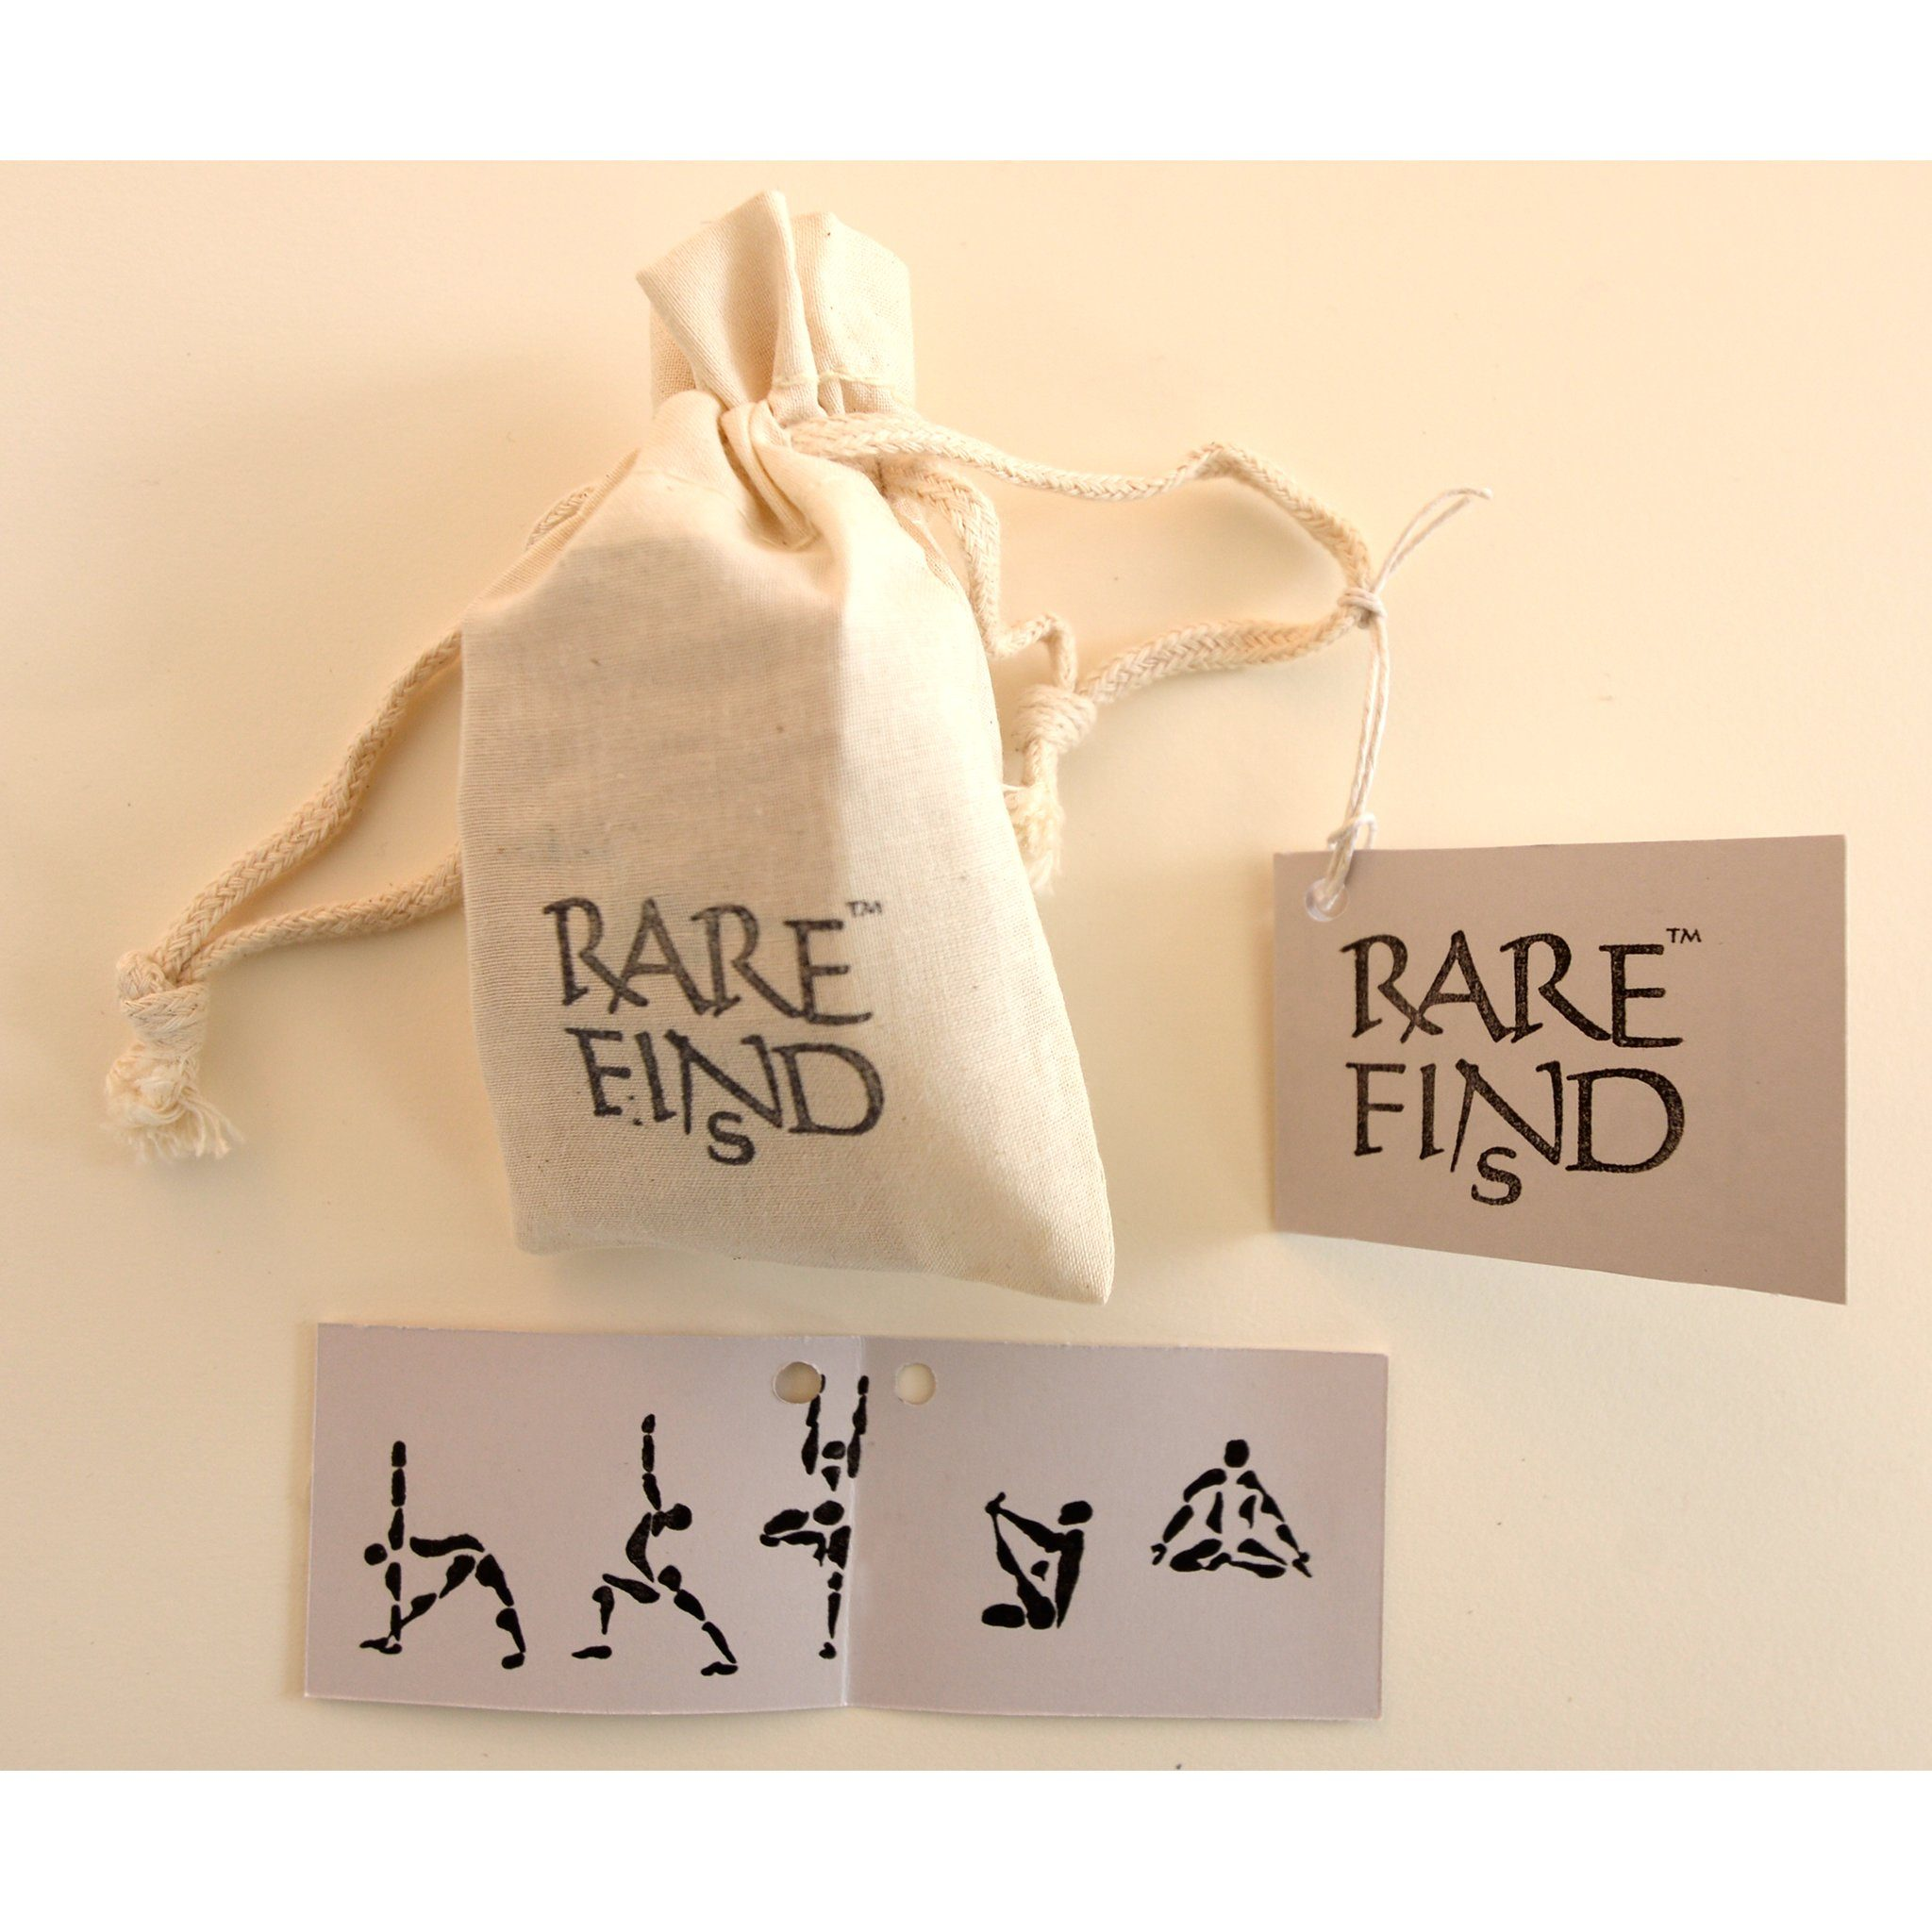 customer rubber stamps with yoga posture designs and muslin bag